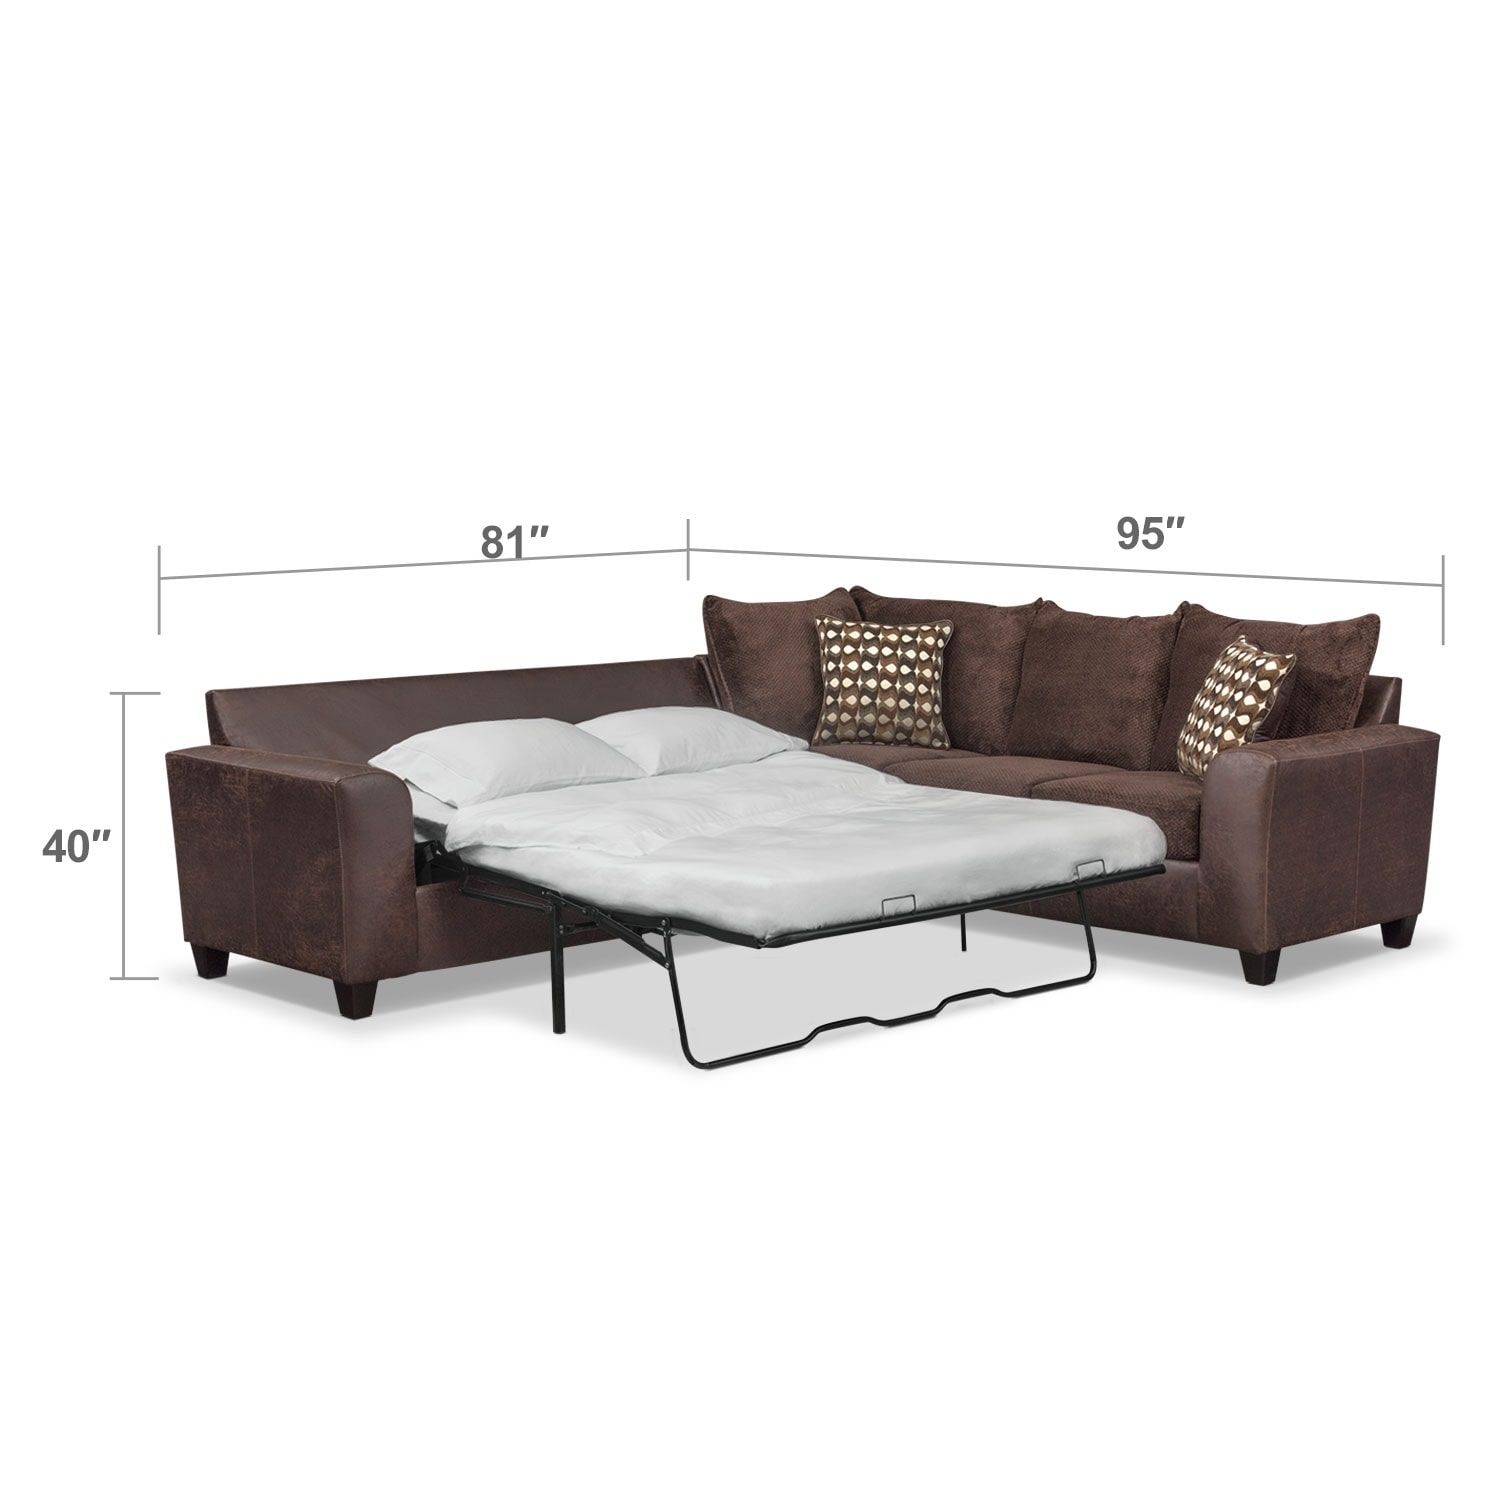 Living Room Furniture - Brando 2-Piece Innerspring Sleeper Sectional - Chocolate